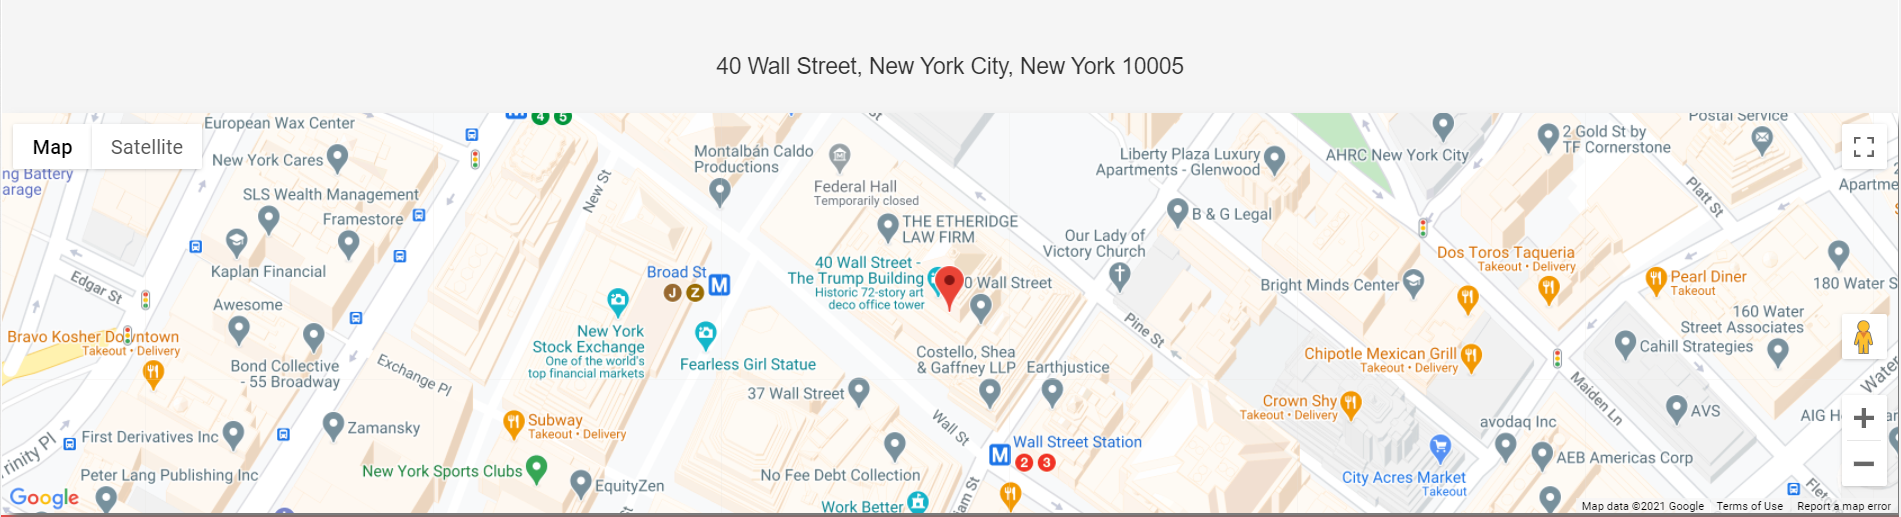 Wall Street Traders Club insisted that they are renting an office on 40 Wall Street in New York City.